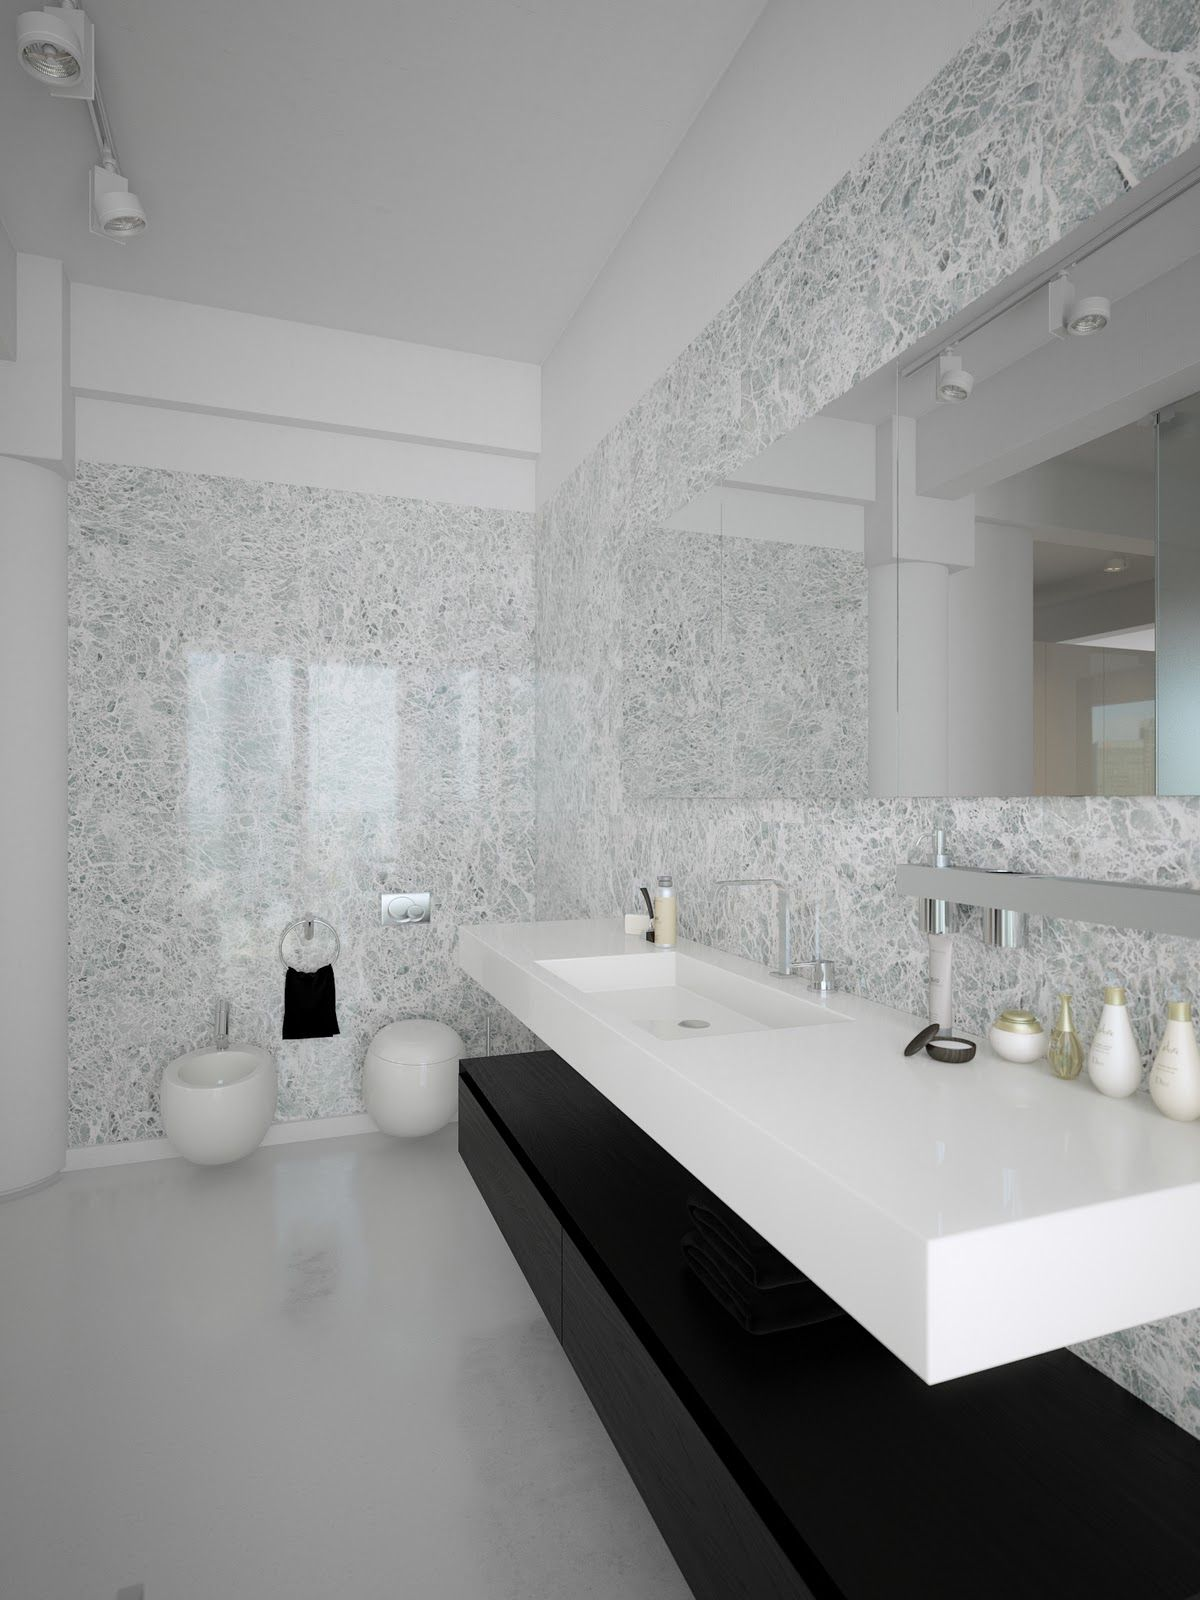 Coolest minimalist modern bathroom design contemporary for New style bathroom